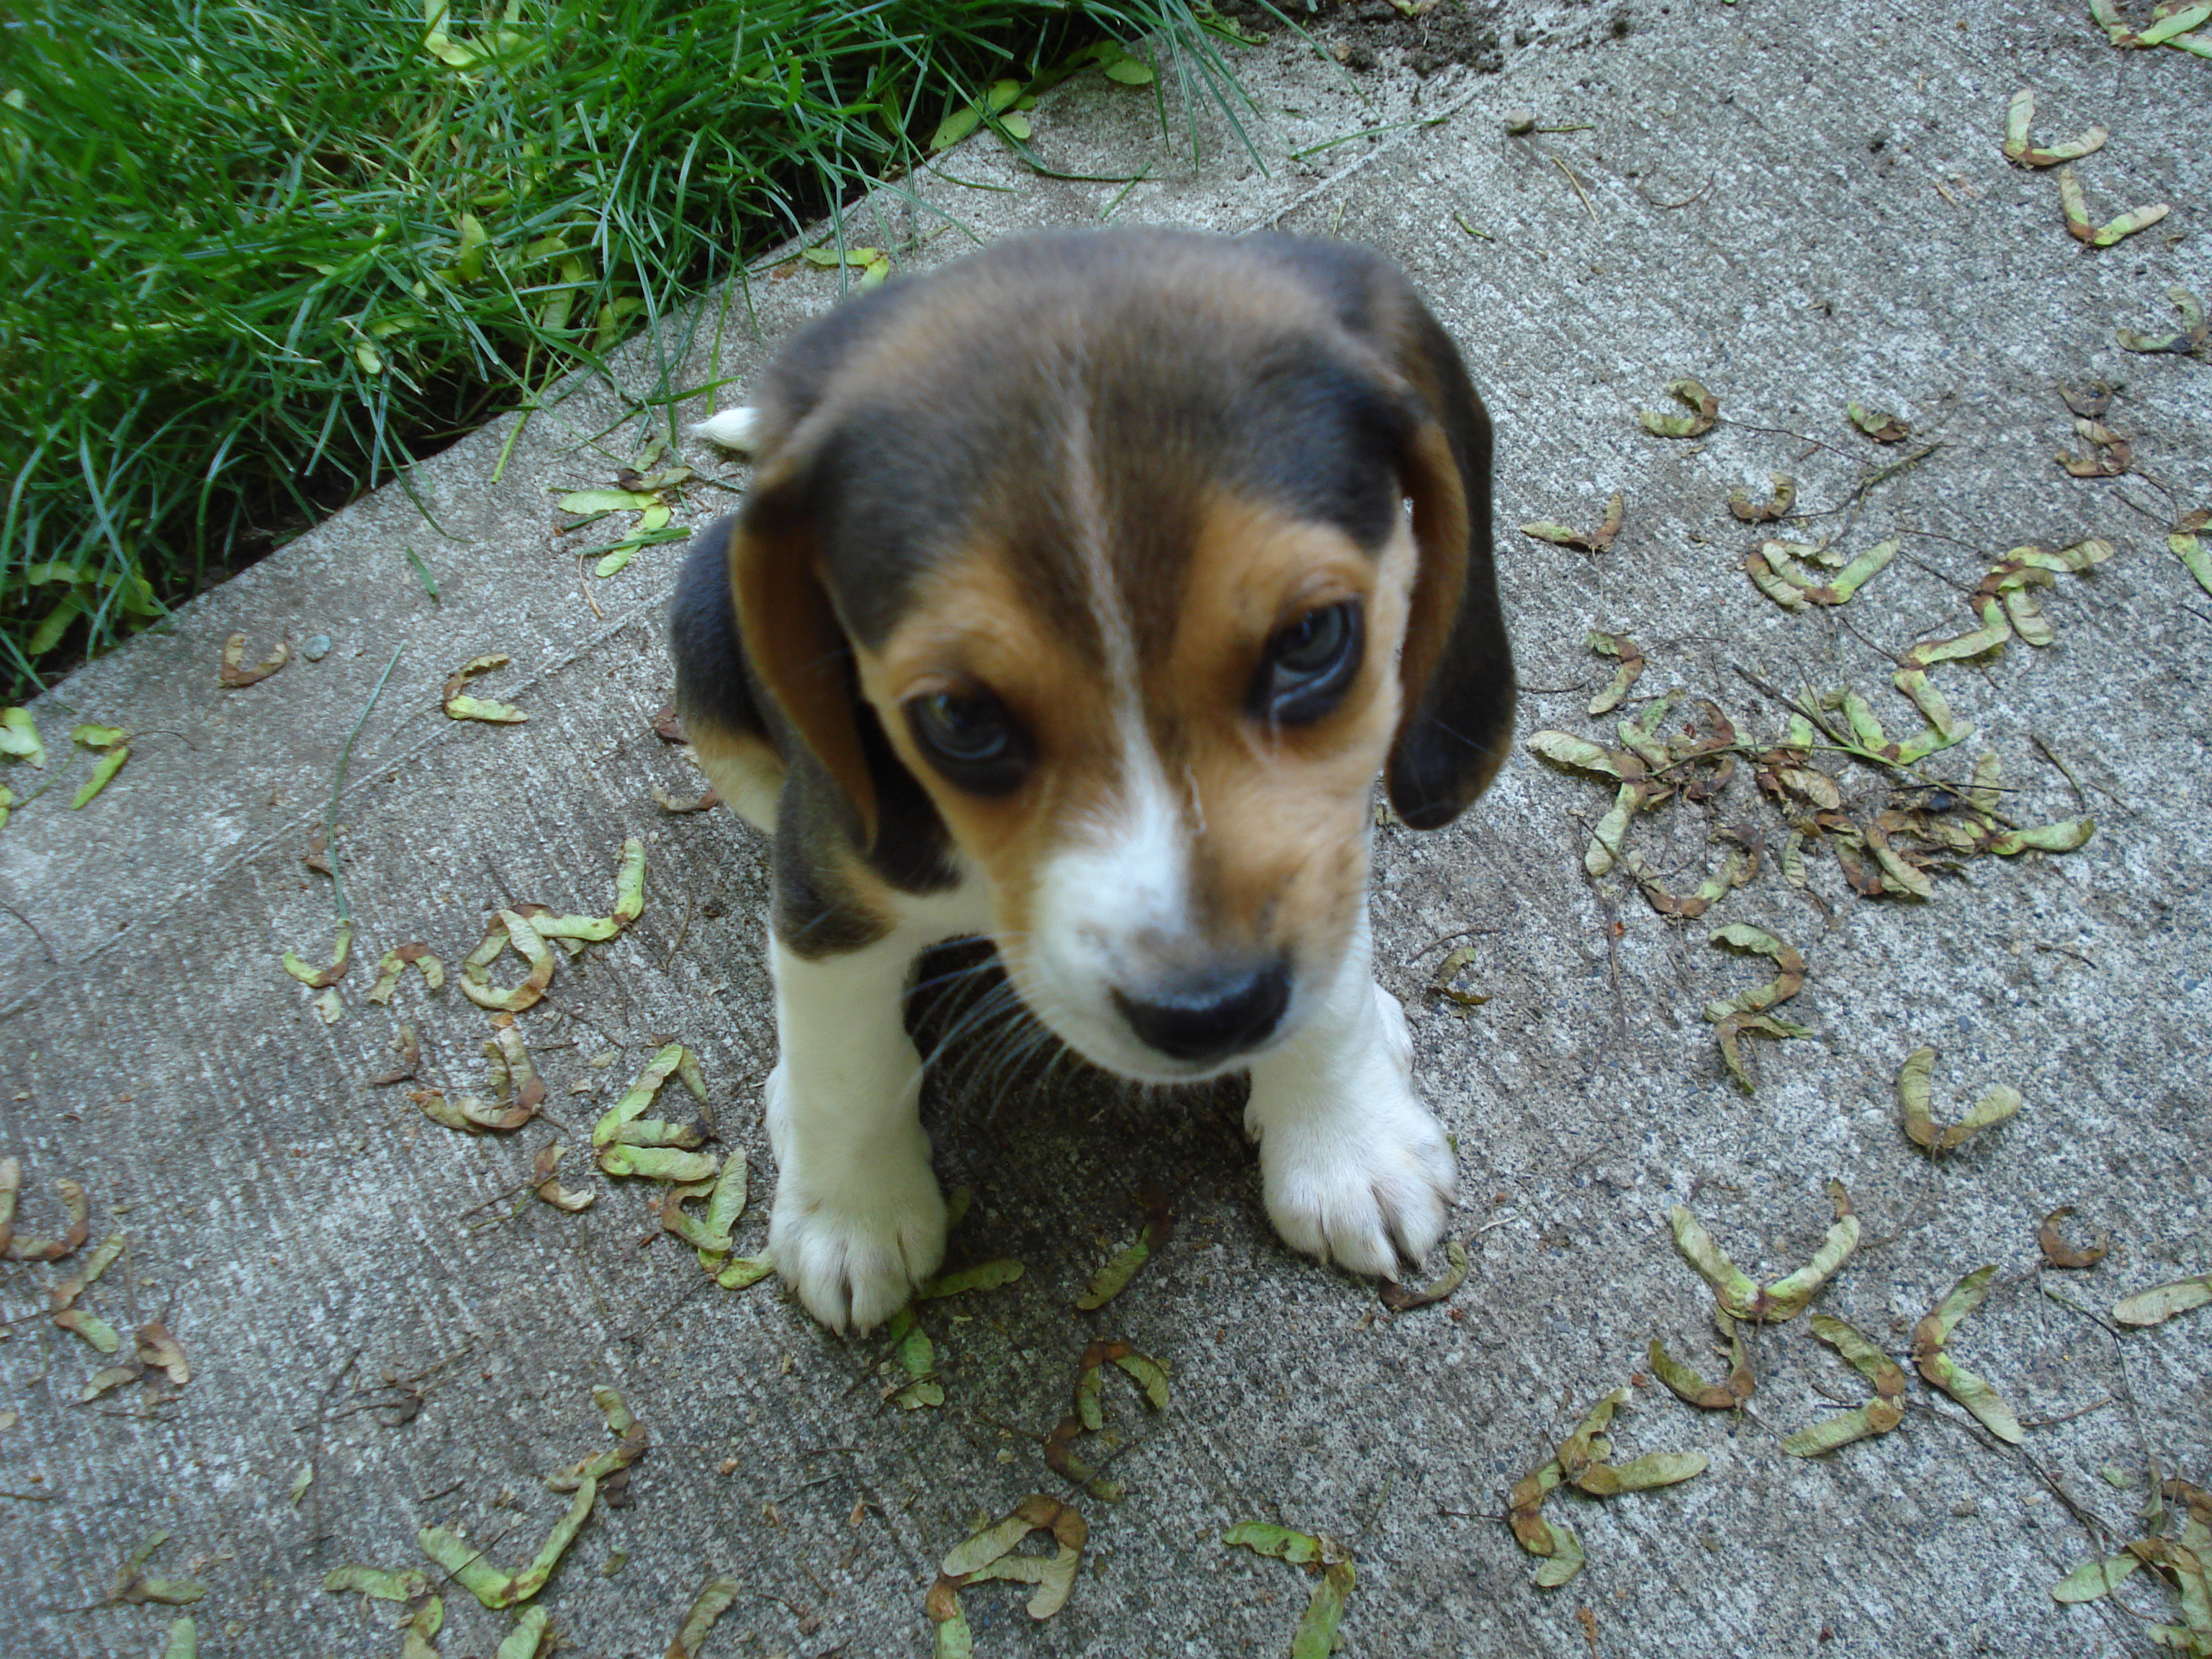 ... – The Ultimate Guide To Beagles » Blog Archive Beagle Photos